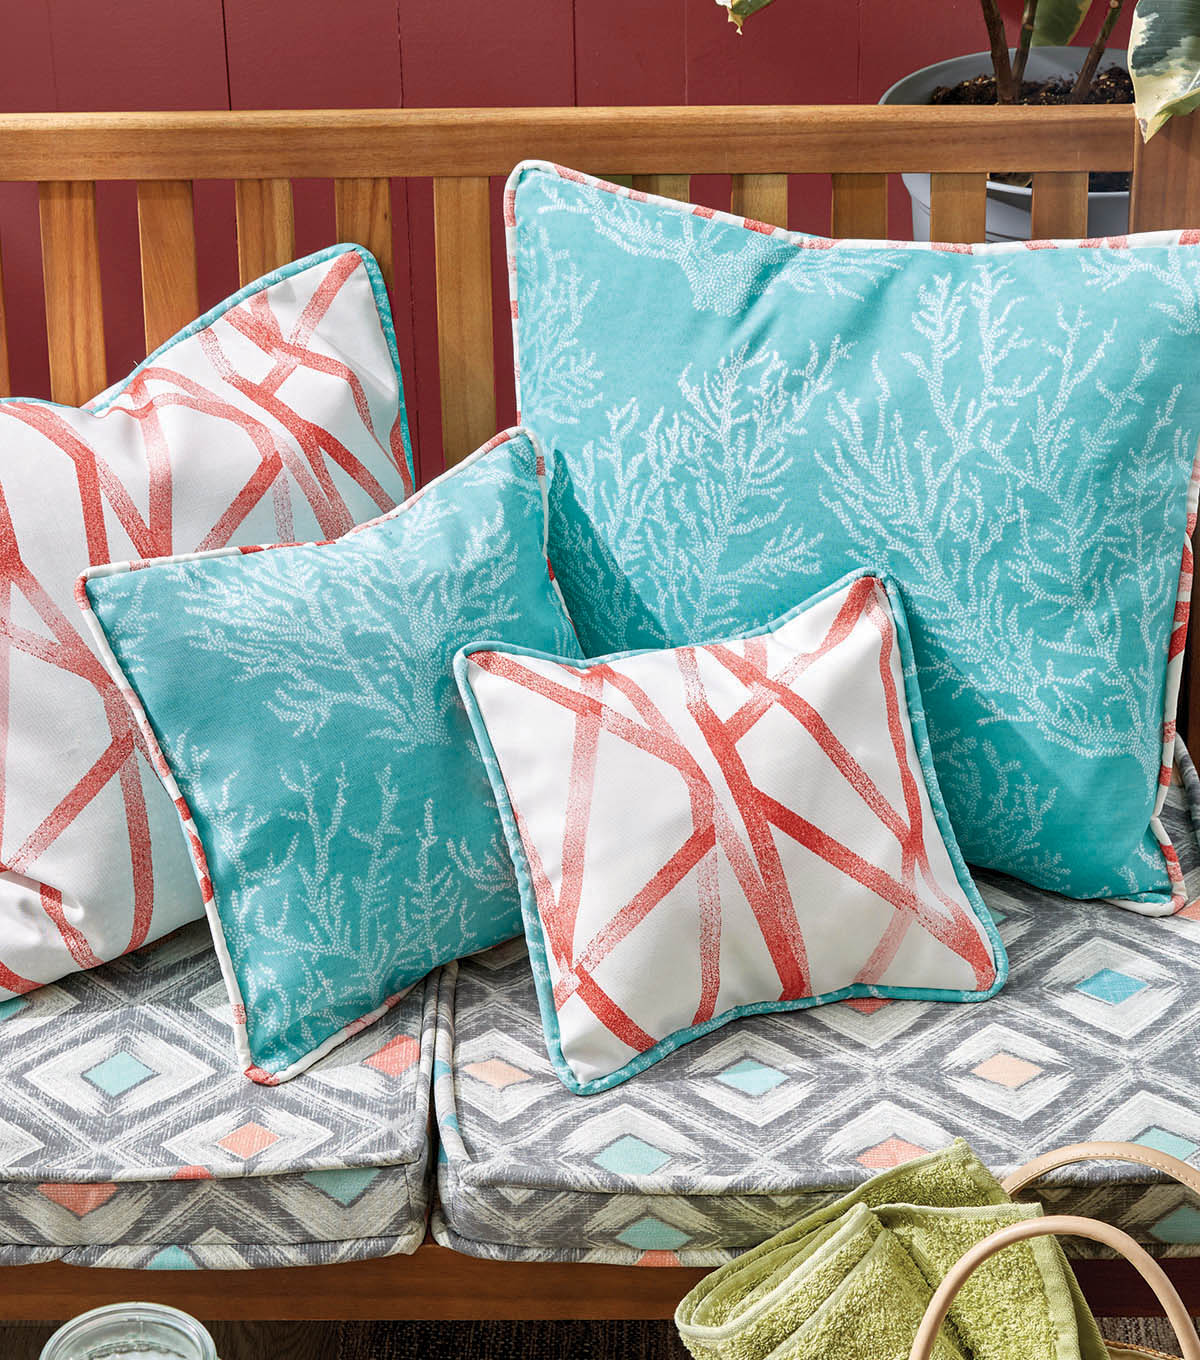 How To Make A Patio Cushions With Coordinating Pillows | JOANN